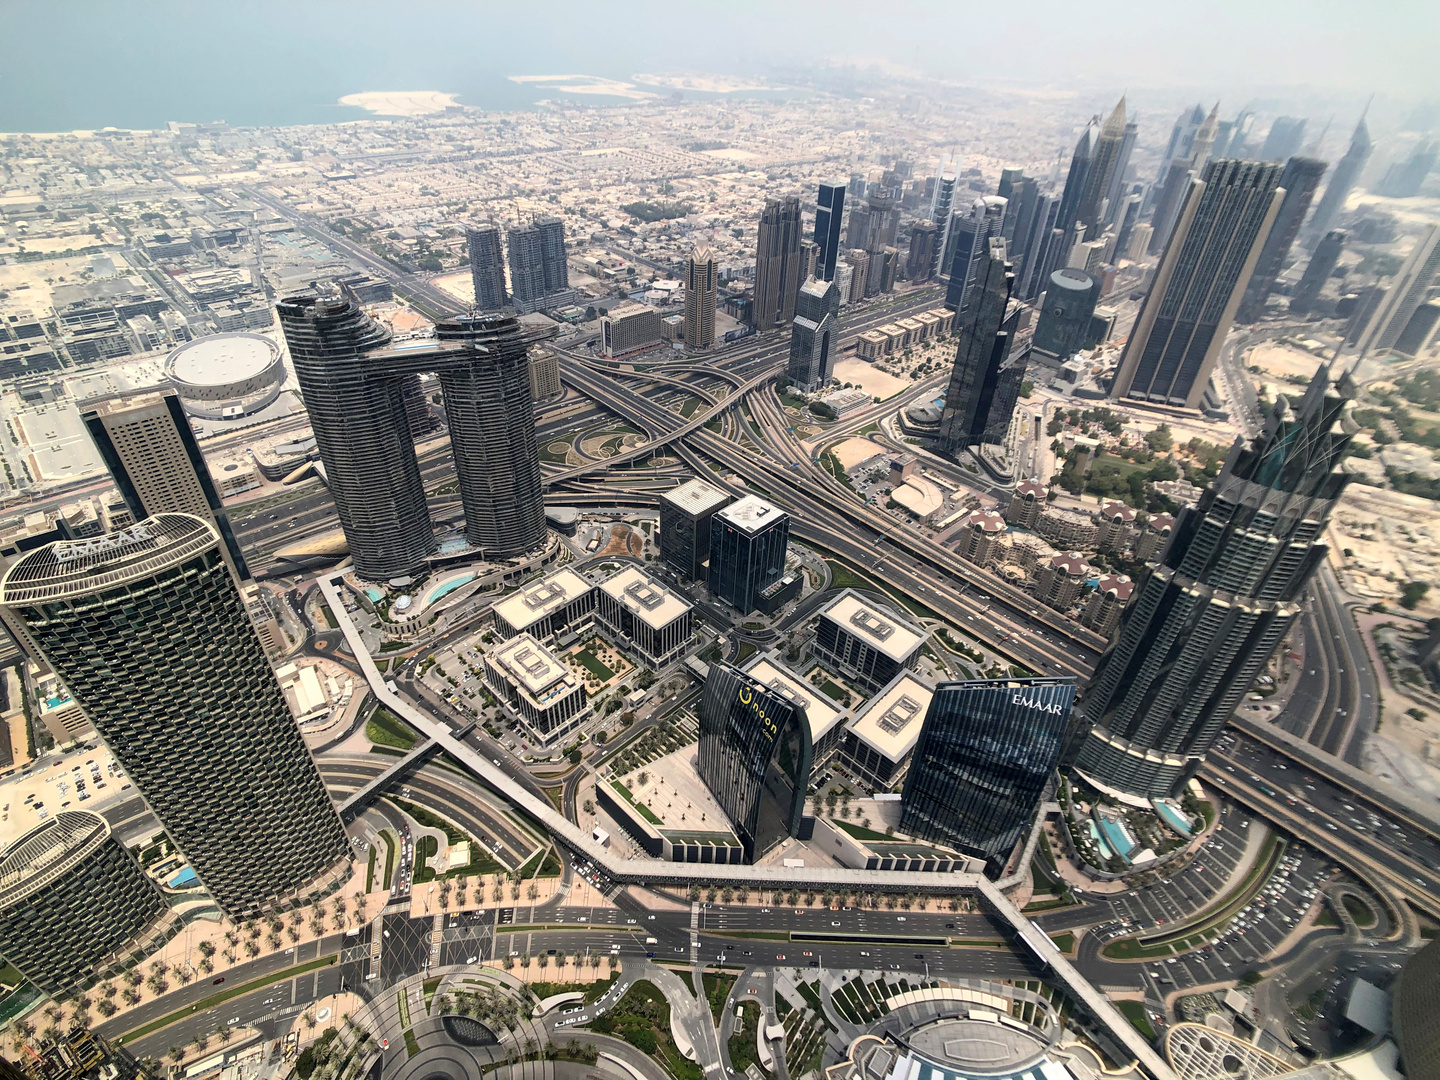 Dubai International Financial Center enters into agreement with Israel's largest bank